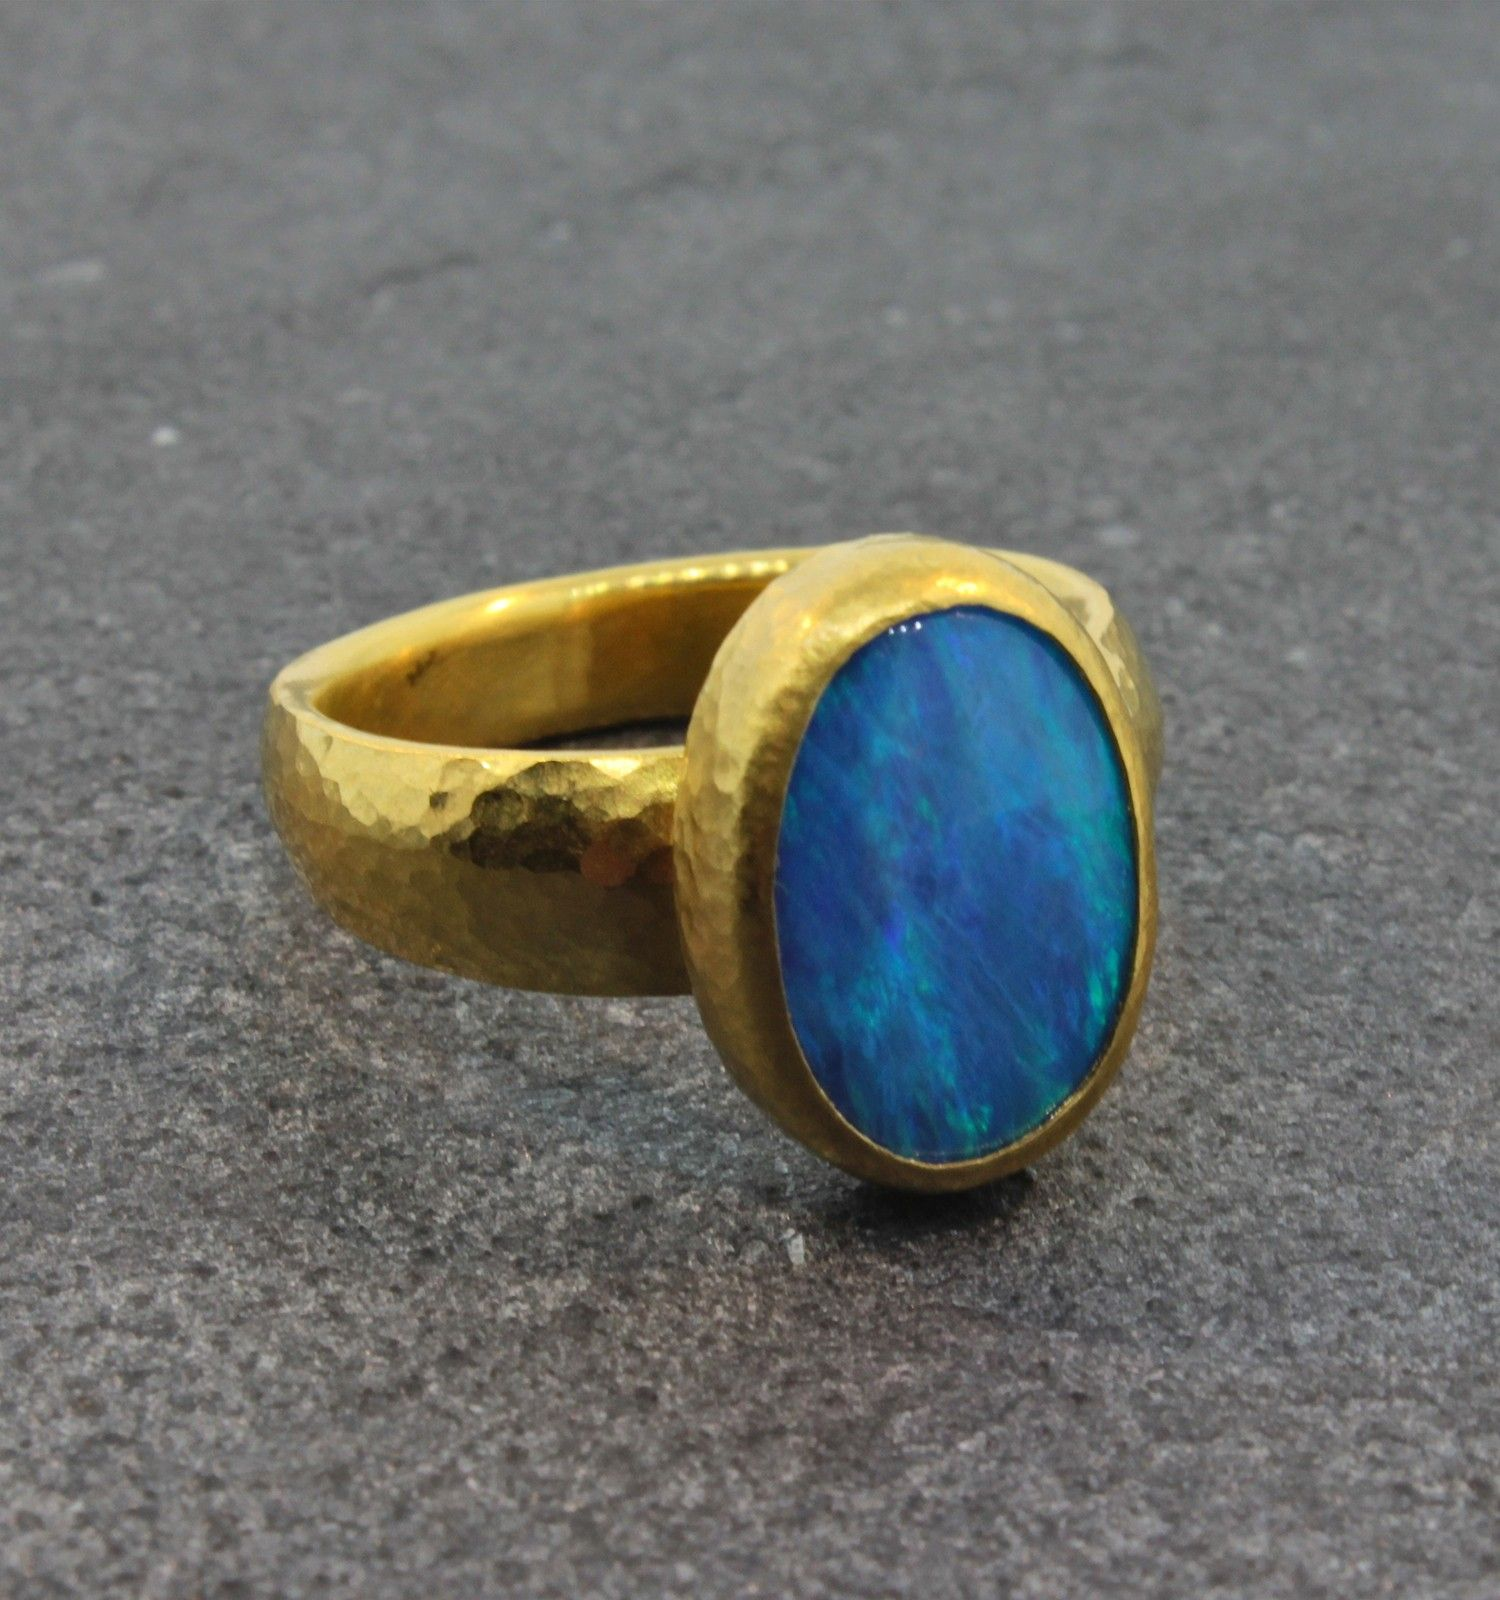 Gurhan 24k One-of-a-Kind Marquise Ring, Blue, Size 6.5